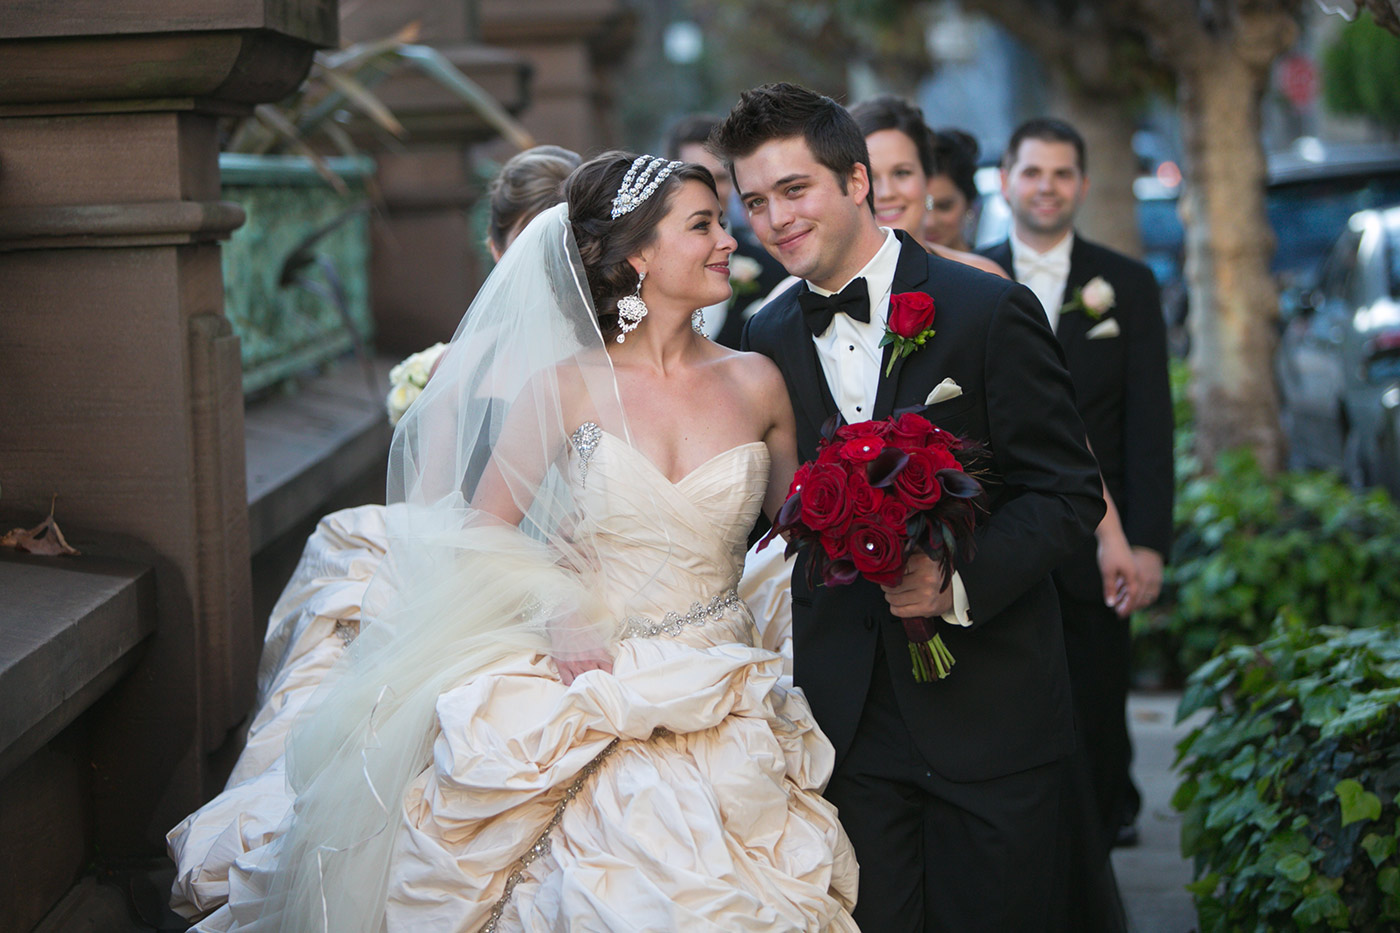 Wedding at the beautiful Fairmont in San Francisco, bride and groom walking down the street